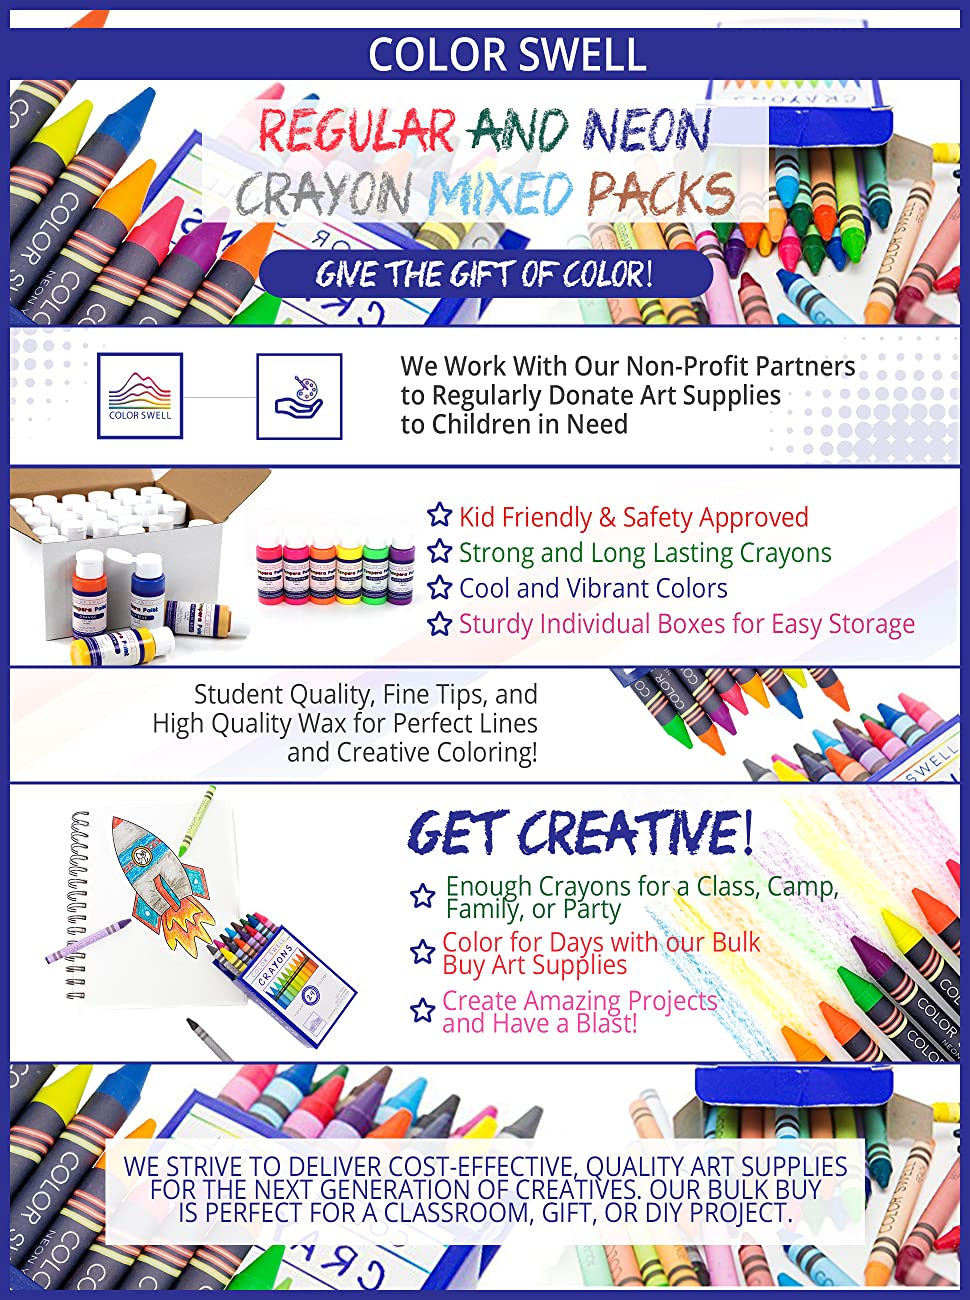 Color Swell Regular and Neon Crayon Bulk Packs 6 Boxes of Fun Neon Crayons and 6 Boxes of Colorful Regular Crayons of Teacher Quality Durable Classroom Packs for Kids Students Party Favors